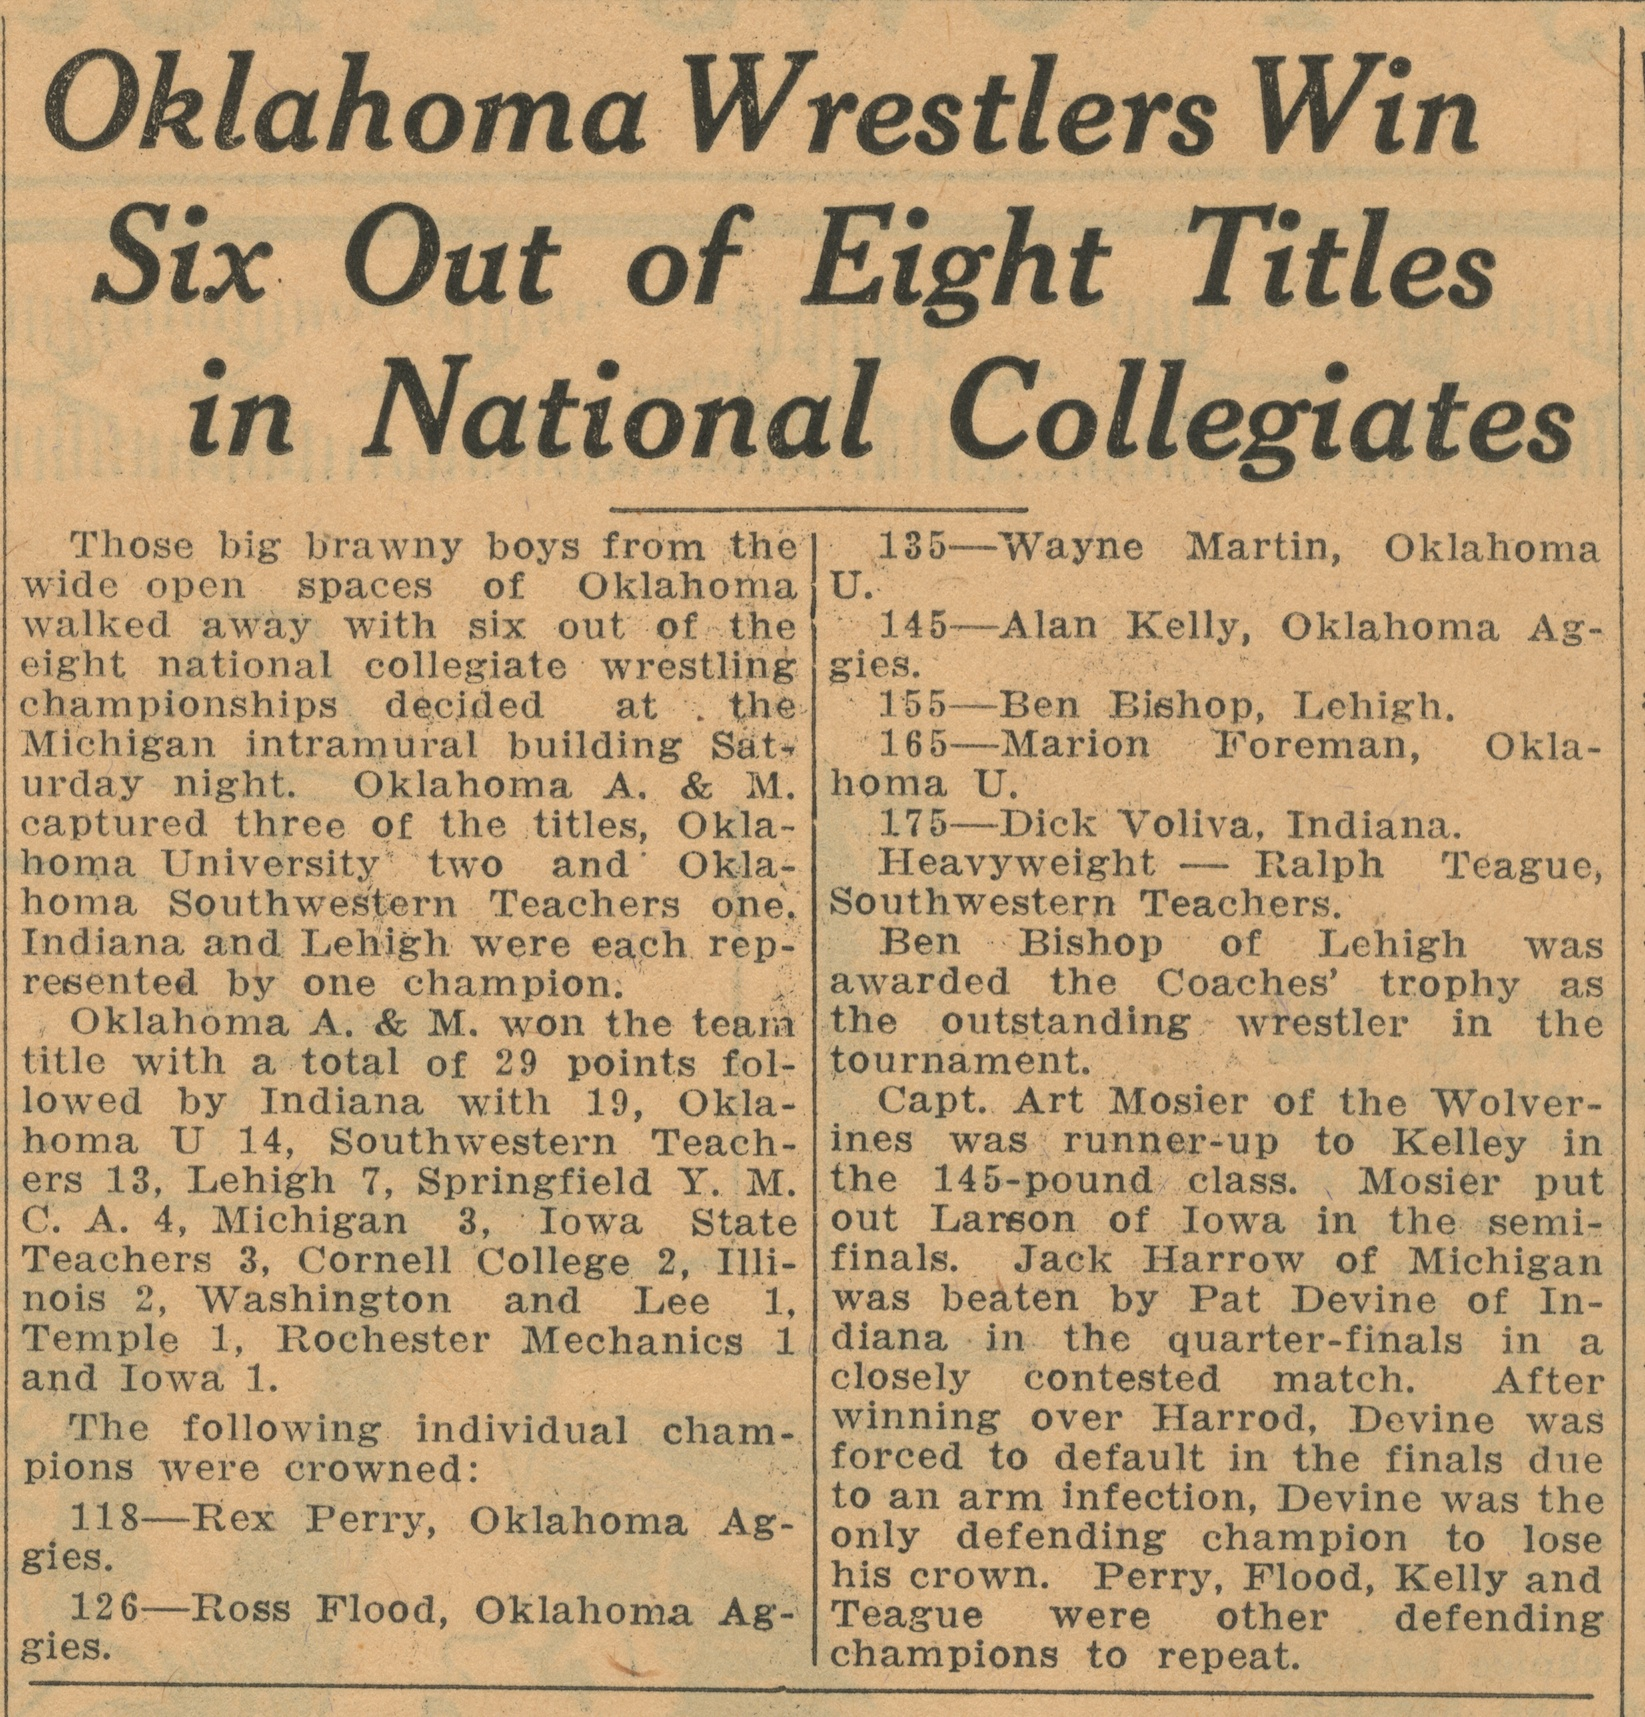 Oklahoma Wrestlers Win Six Out of Eight Titles In National Collegiates image